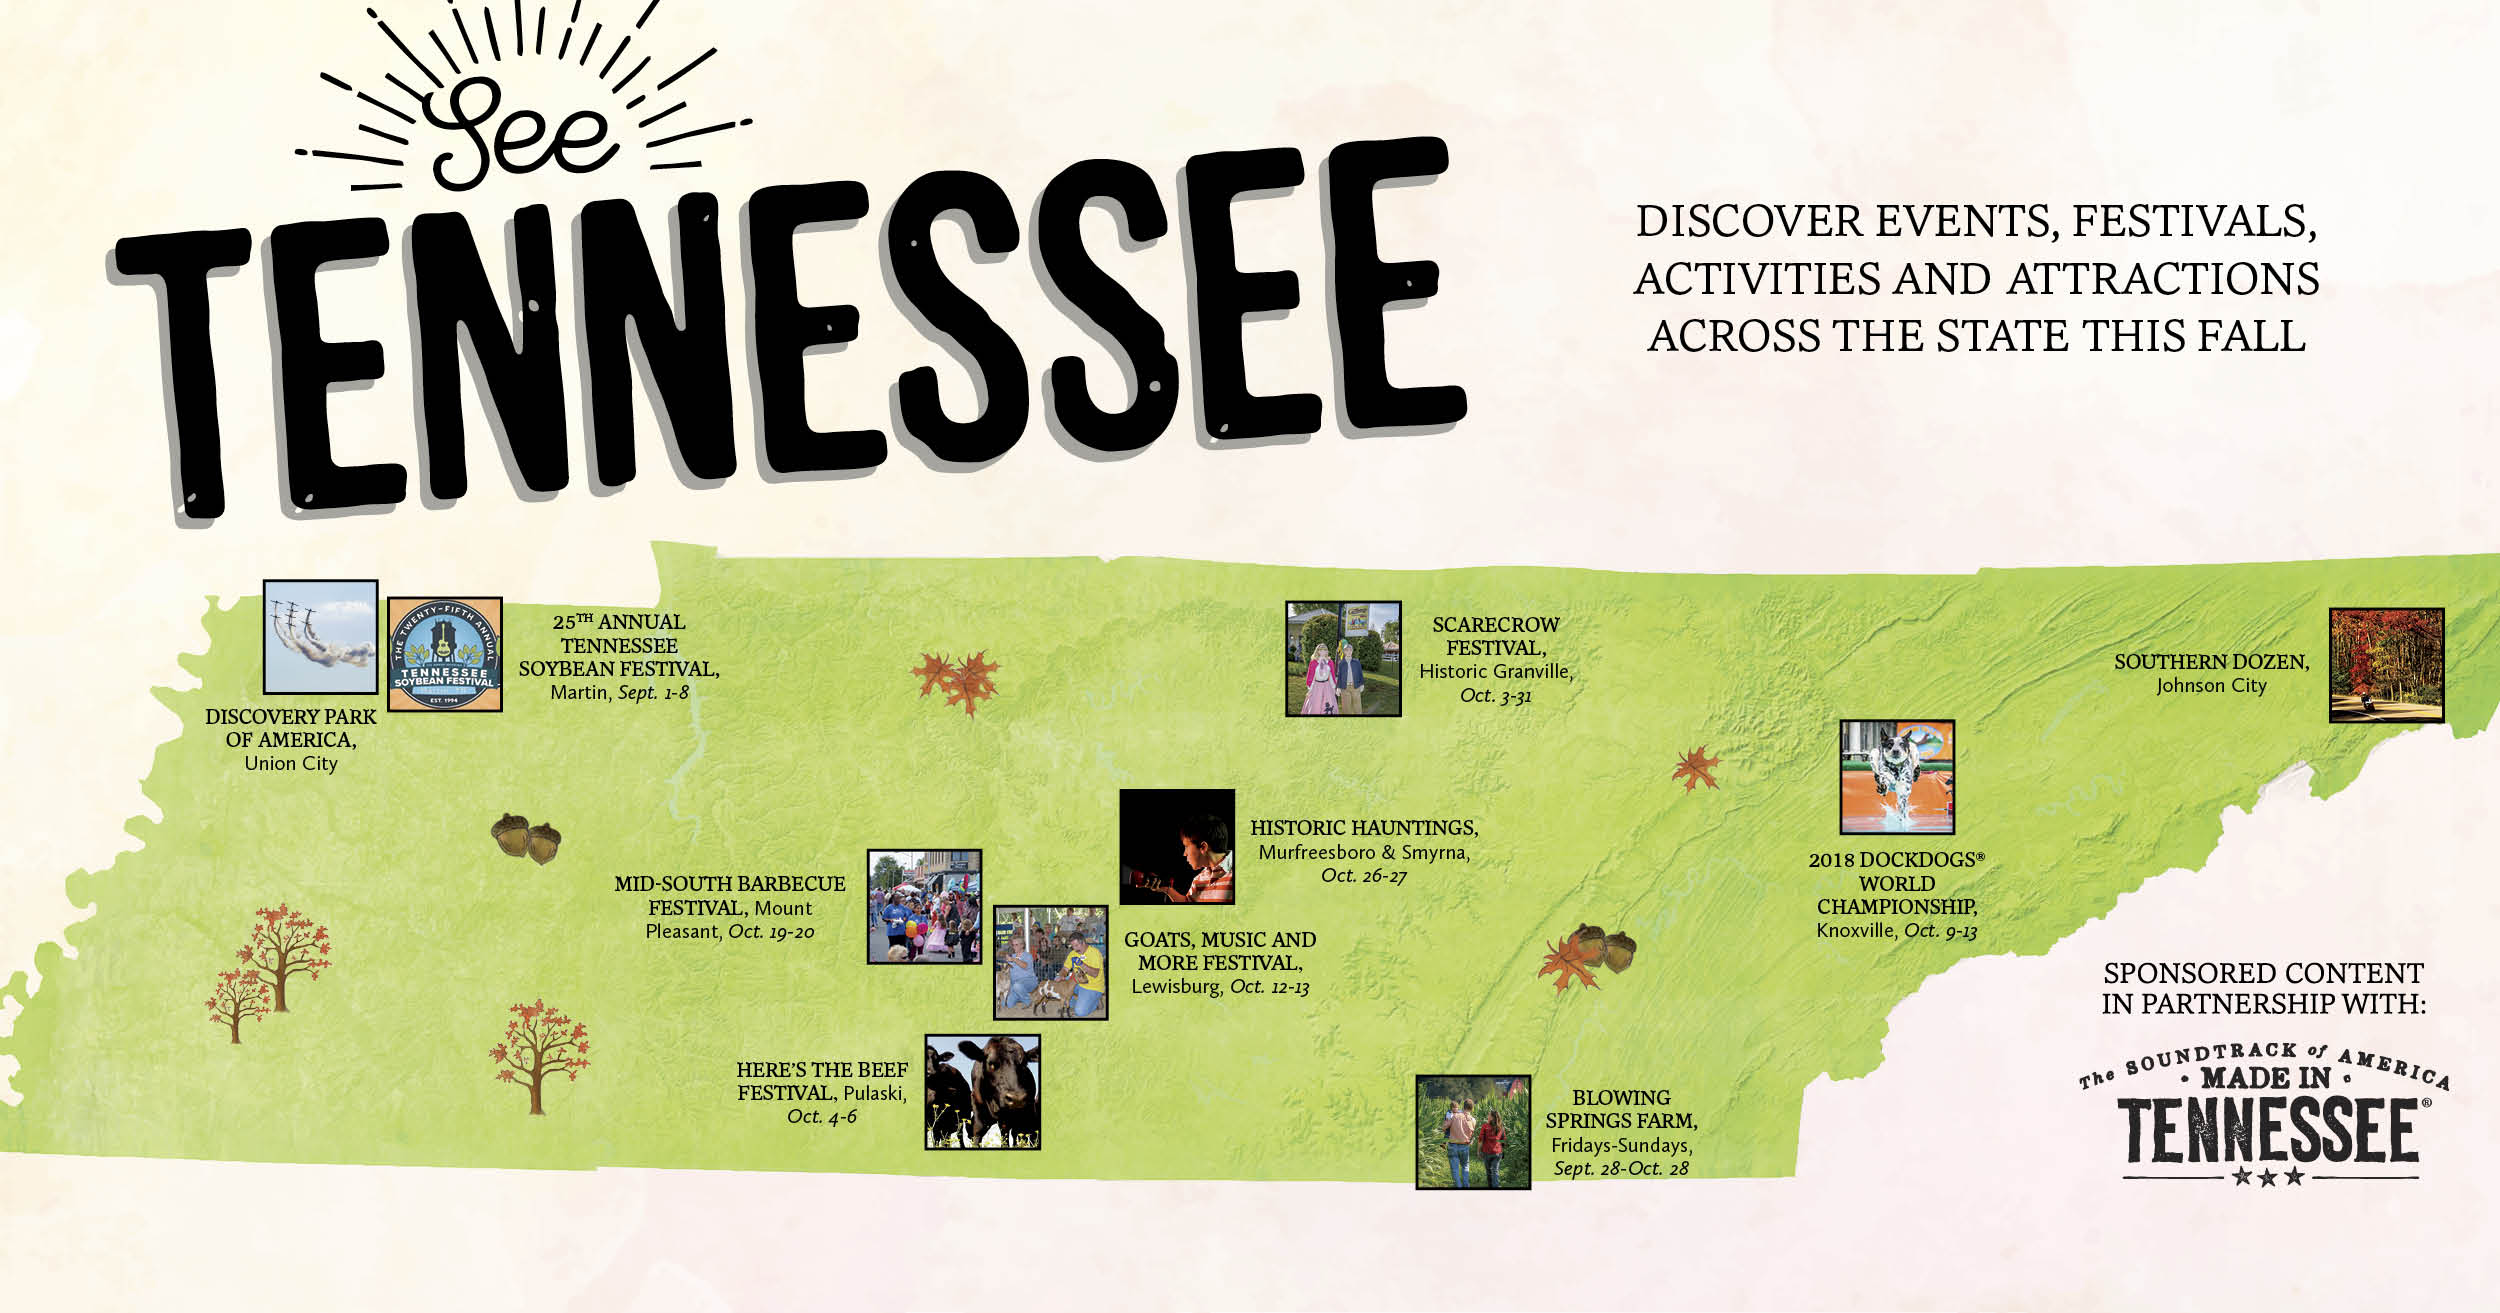 10 Places to Visit This Fall in Tennessee [MAP]